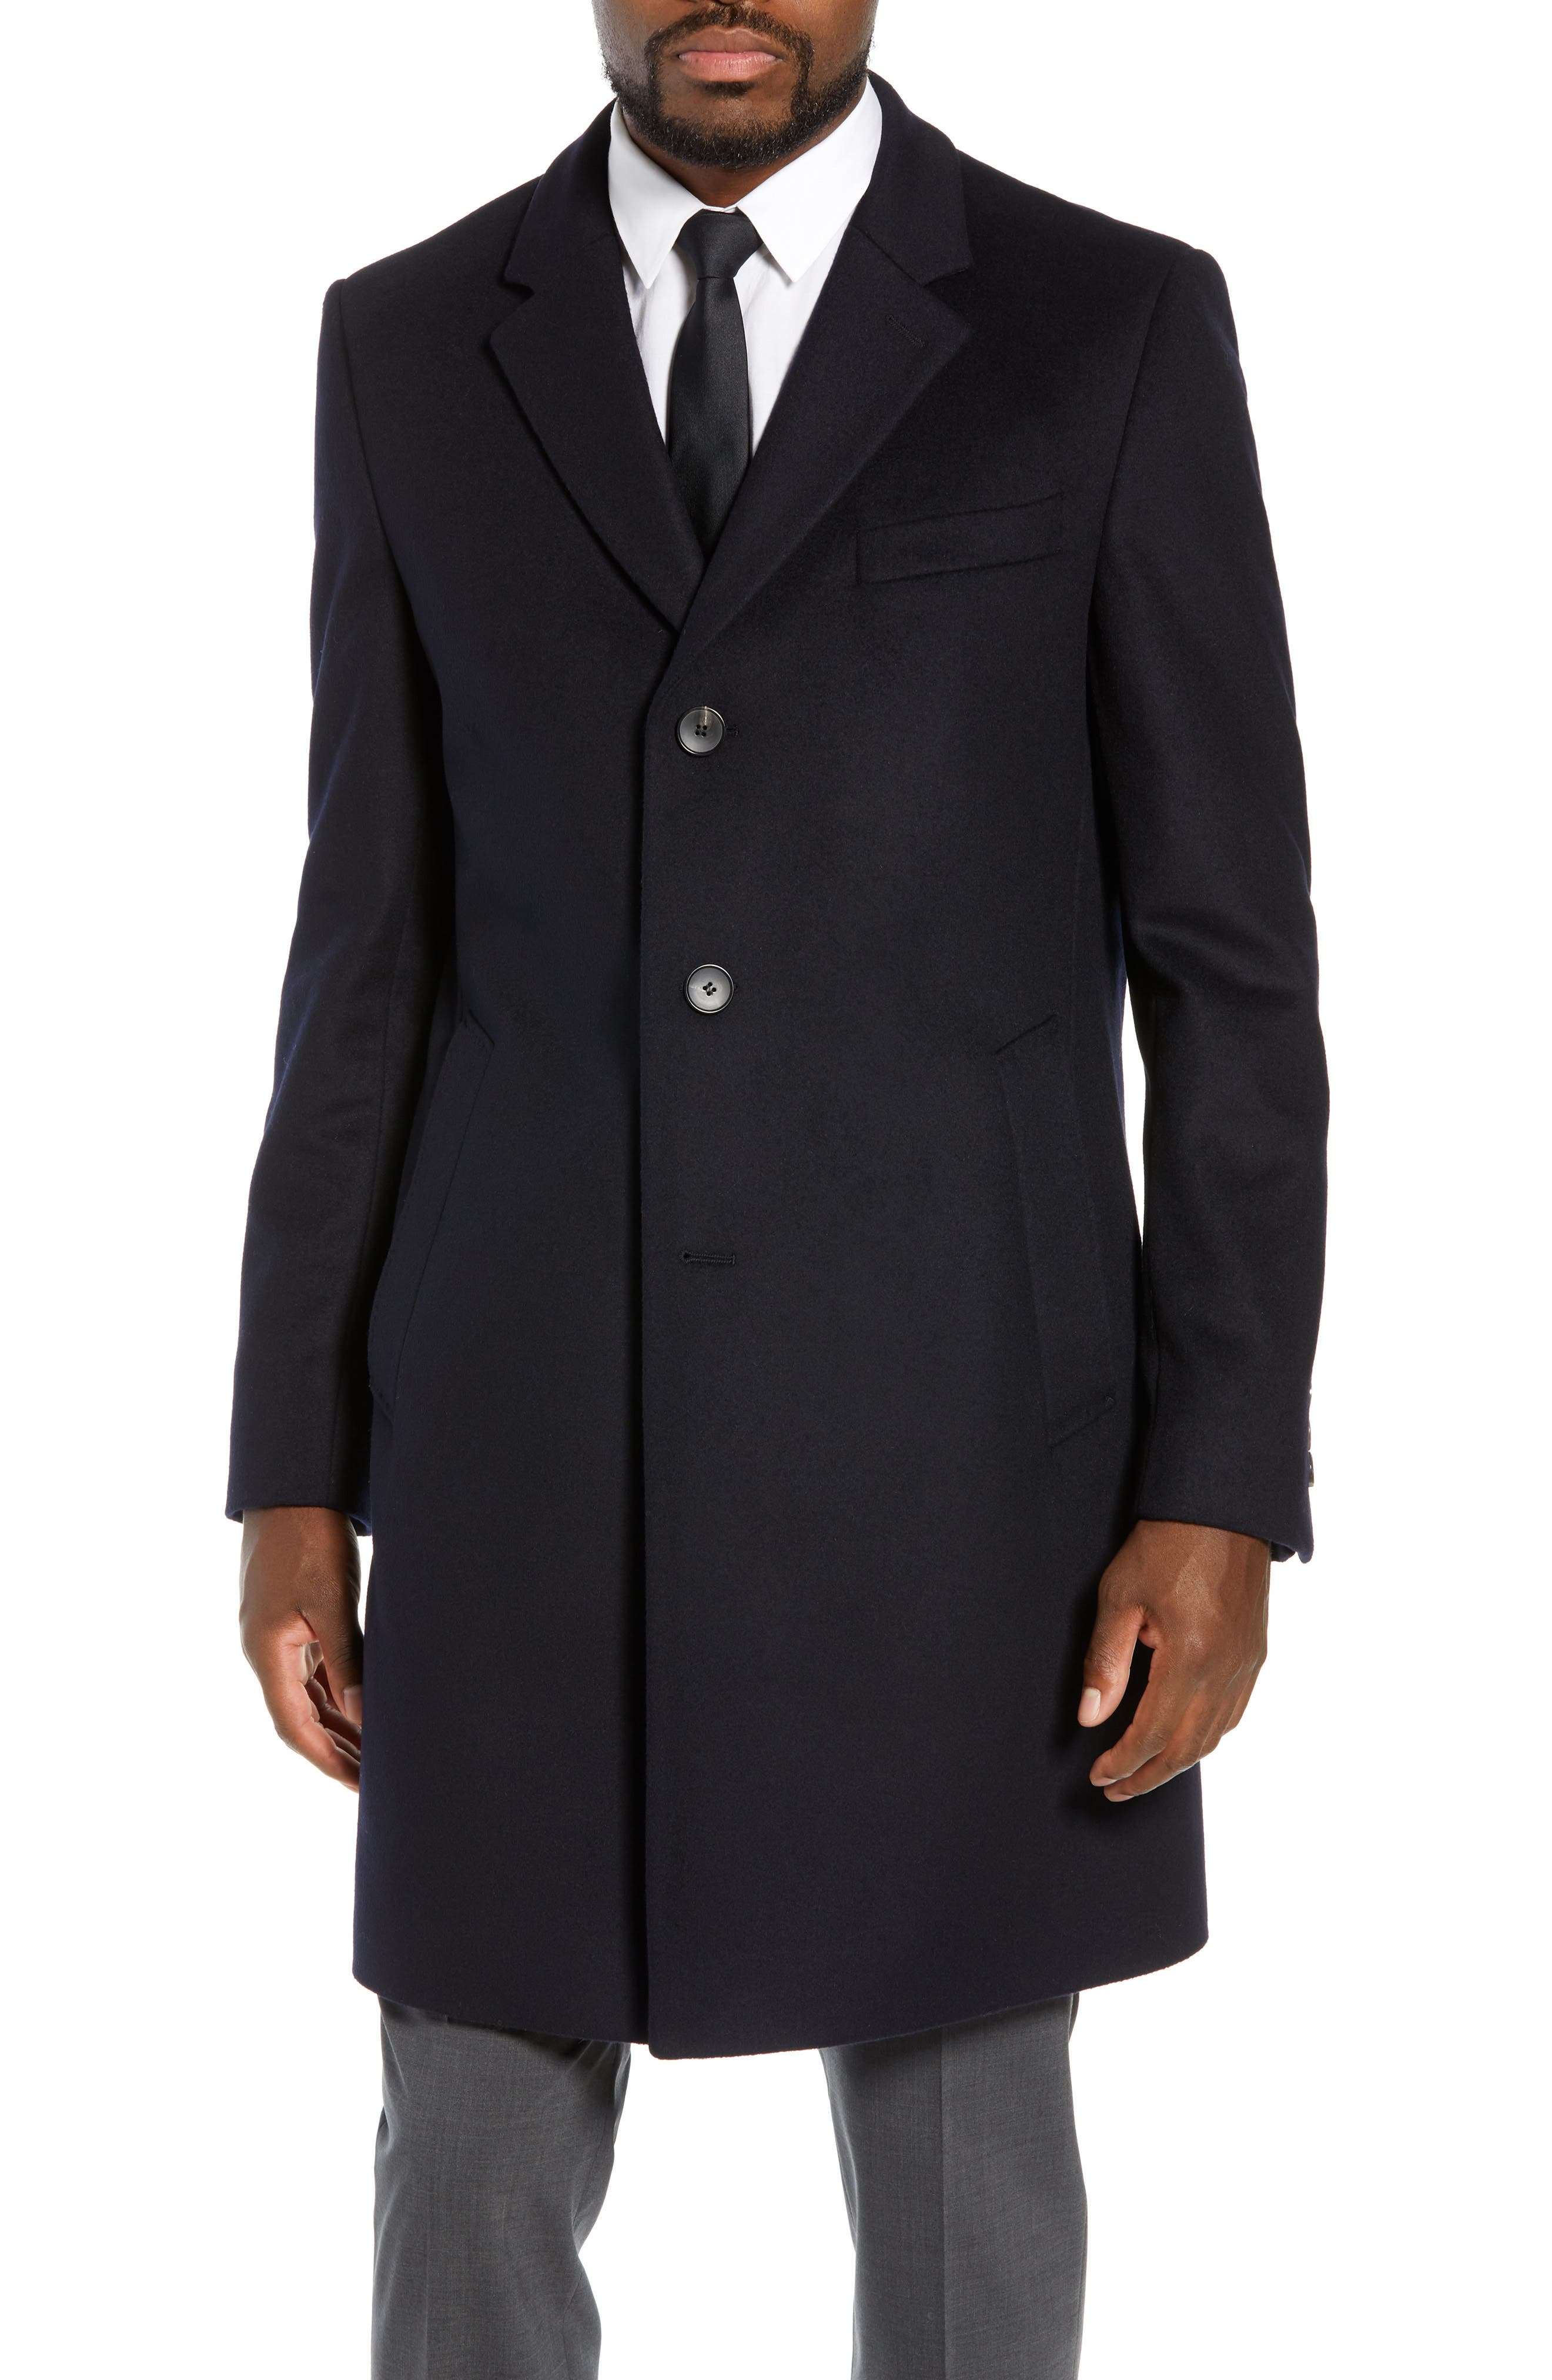 BOSS,                             Nye Regular Fit Solid Wool & Cashmere Topcoat,                             Alternate thumbnail 4, color,                             DARK BLUE